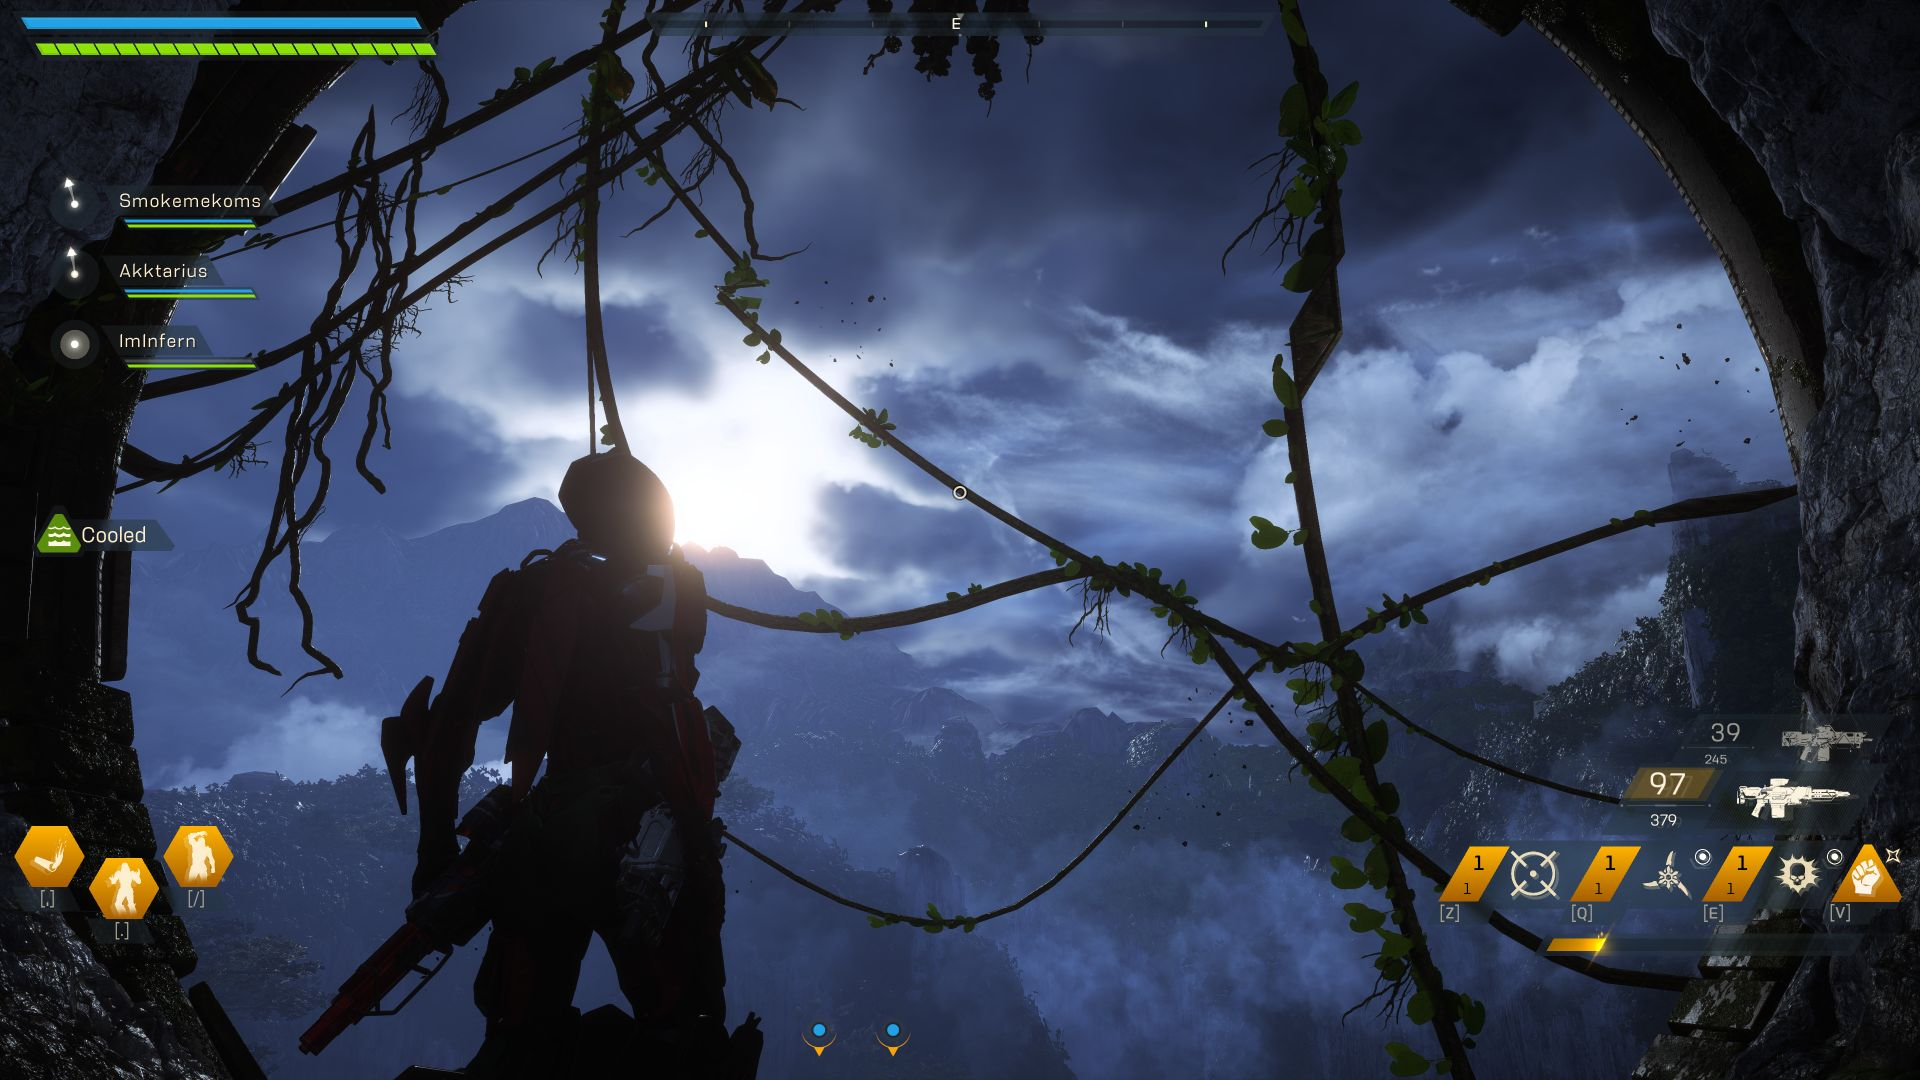 anthem-screenshot-2019-03-10-16-54-07-92